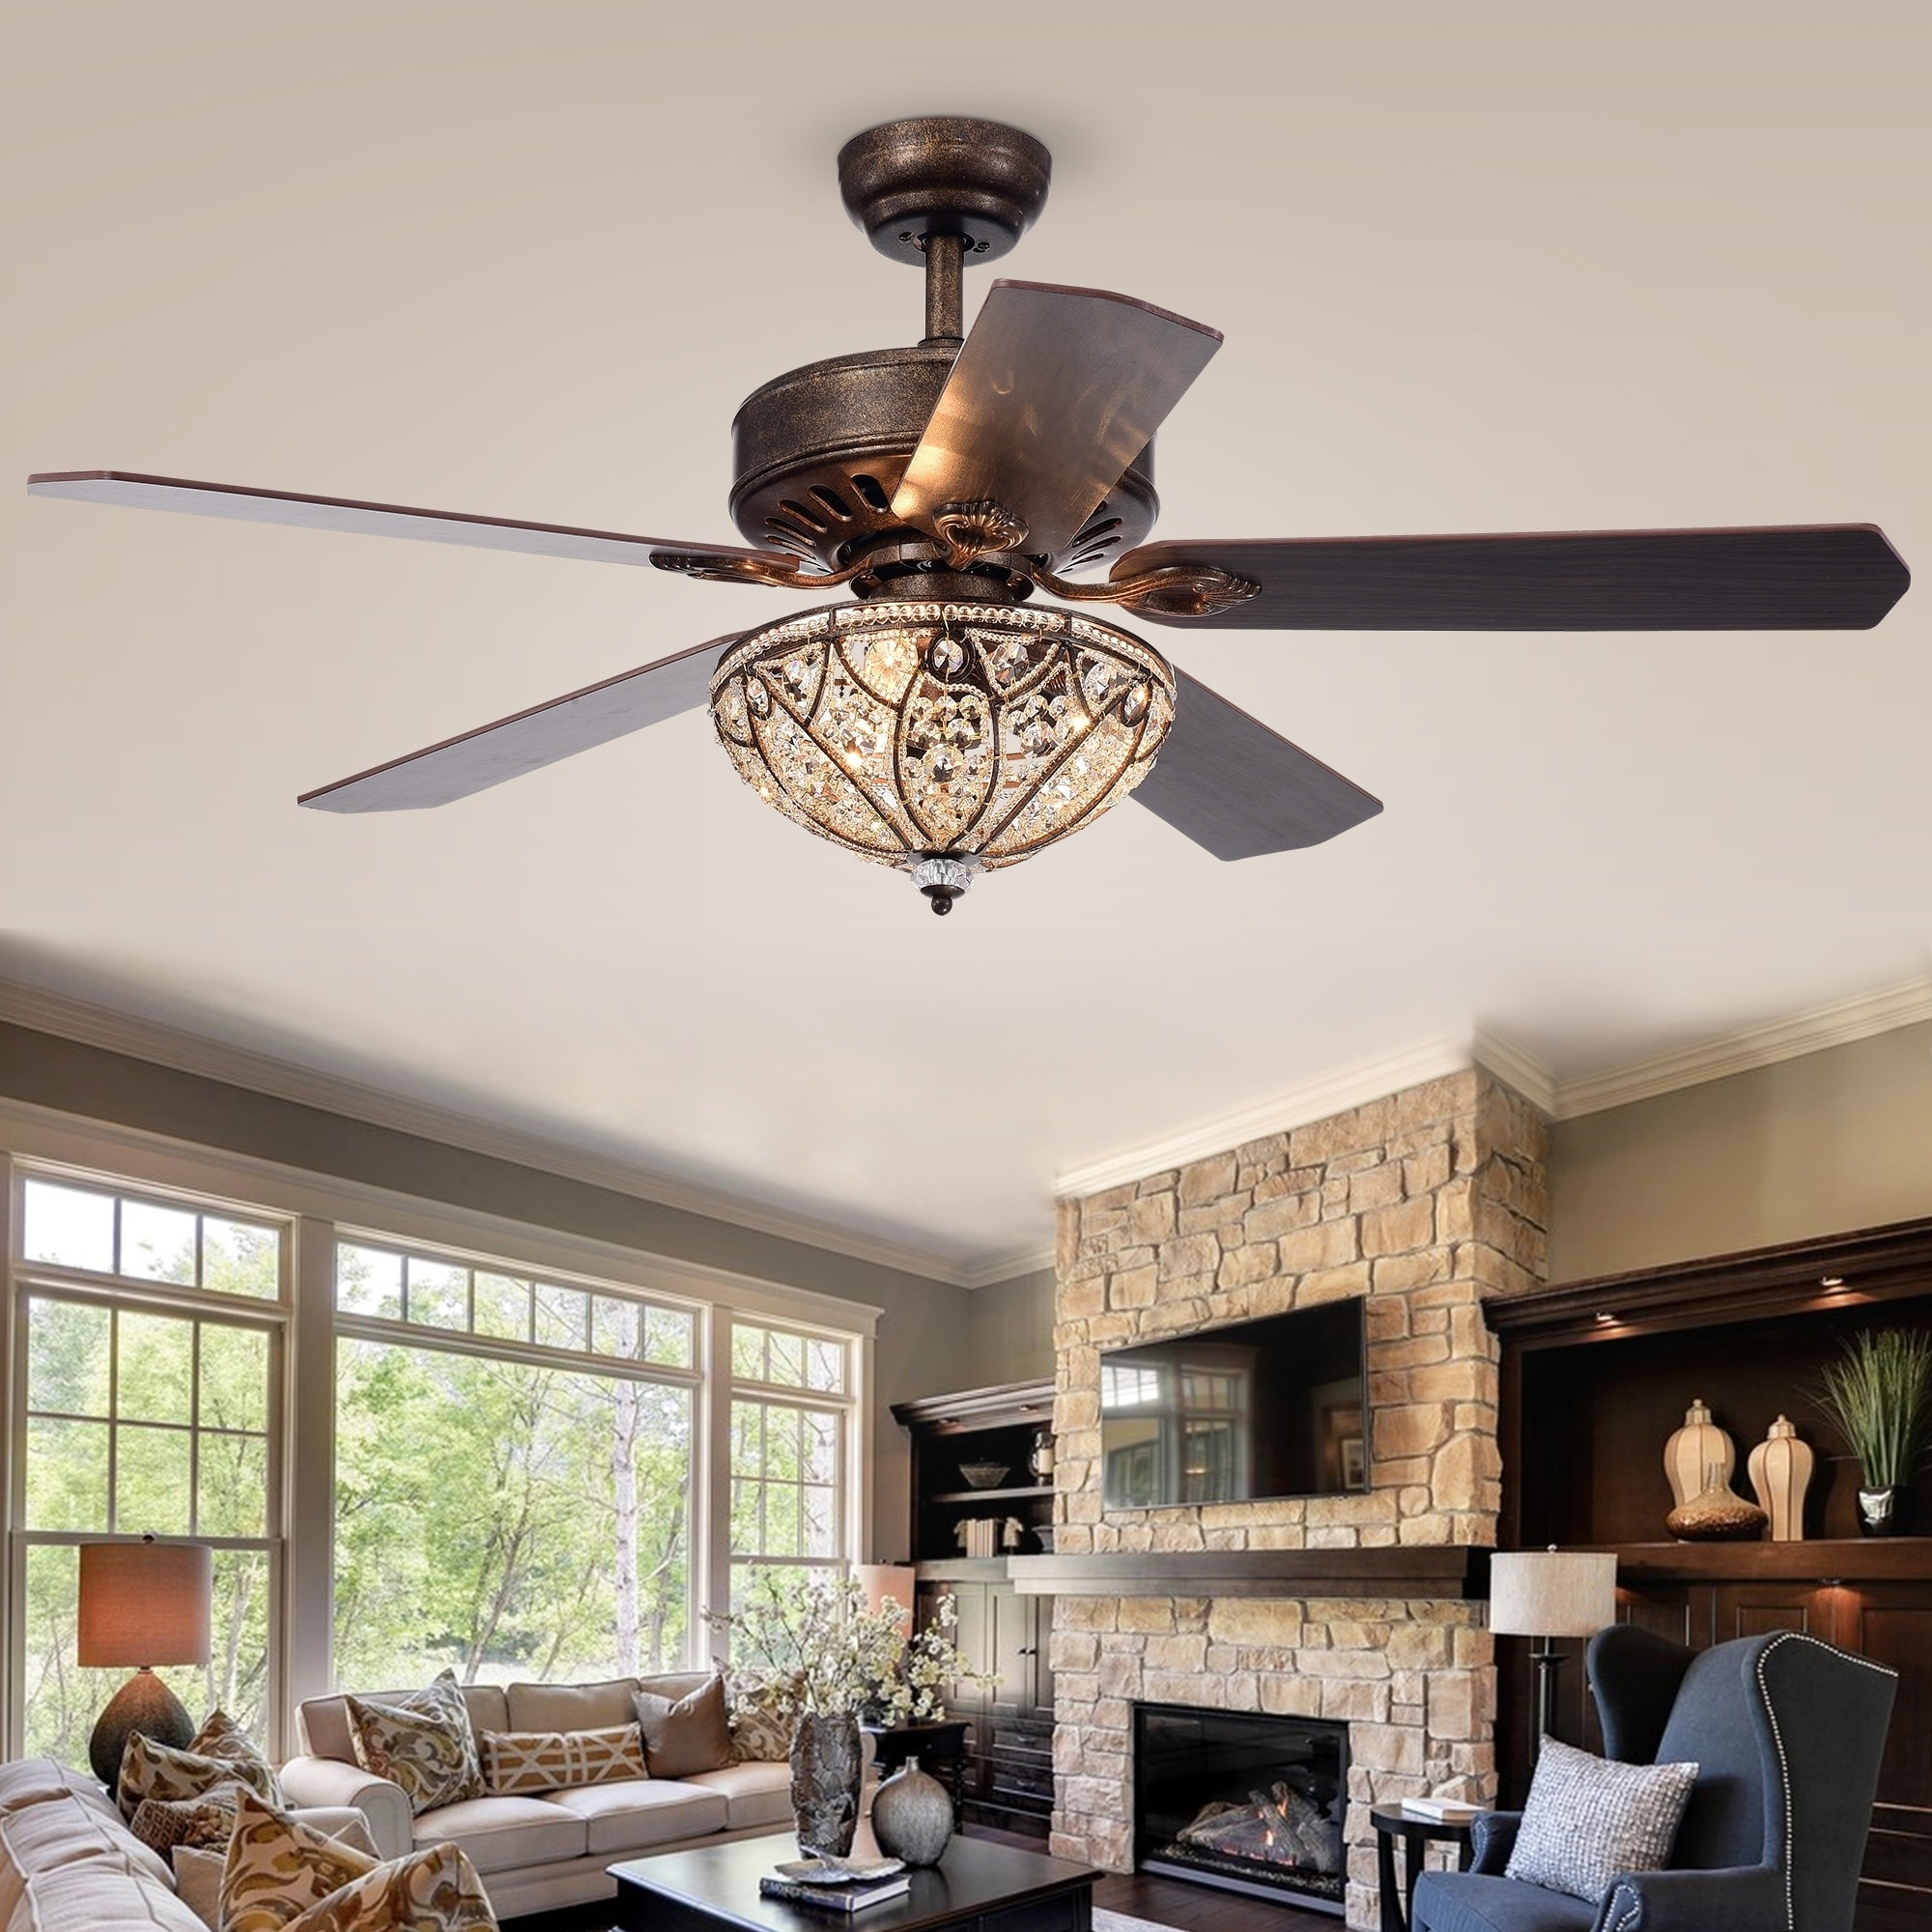 Gliska 52-Inch 5-Blade Rustic Bronze Lighted Ceiling Fans w Crystal Shade  Optional Remote Control (incl 2 Color Option Blades)